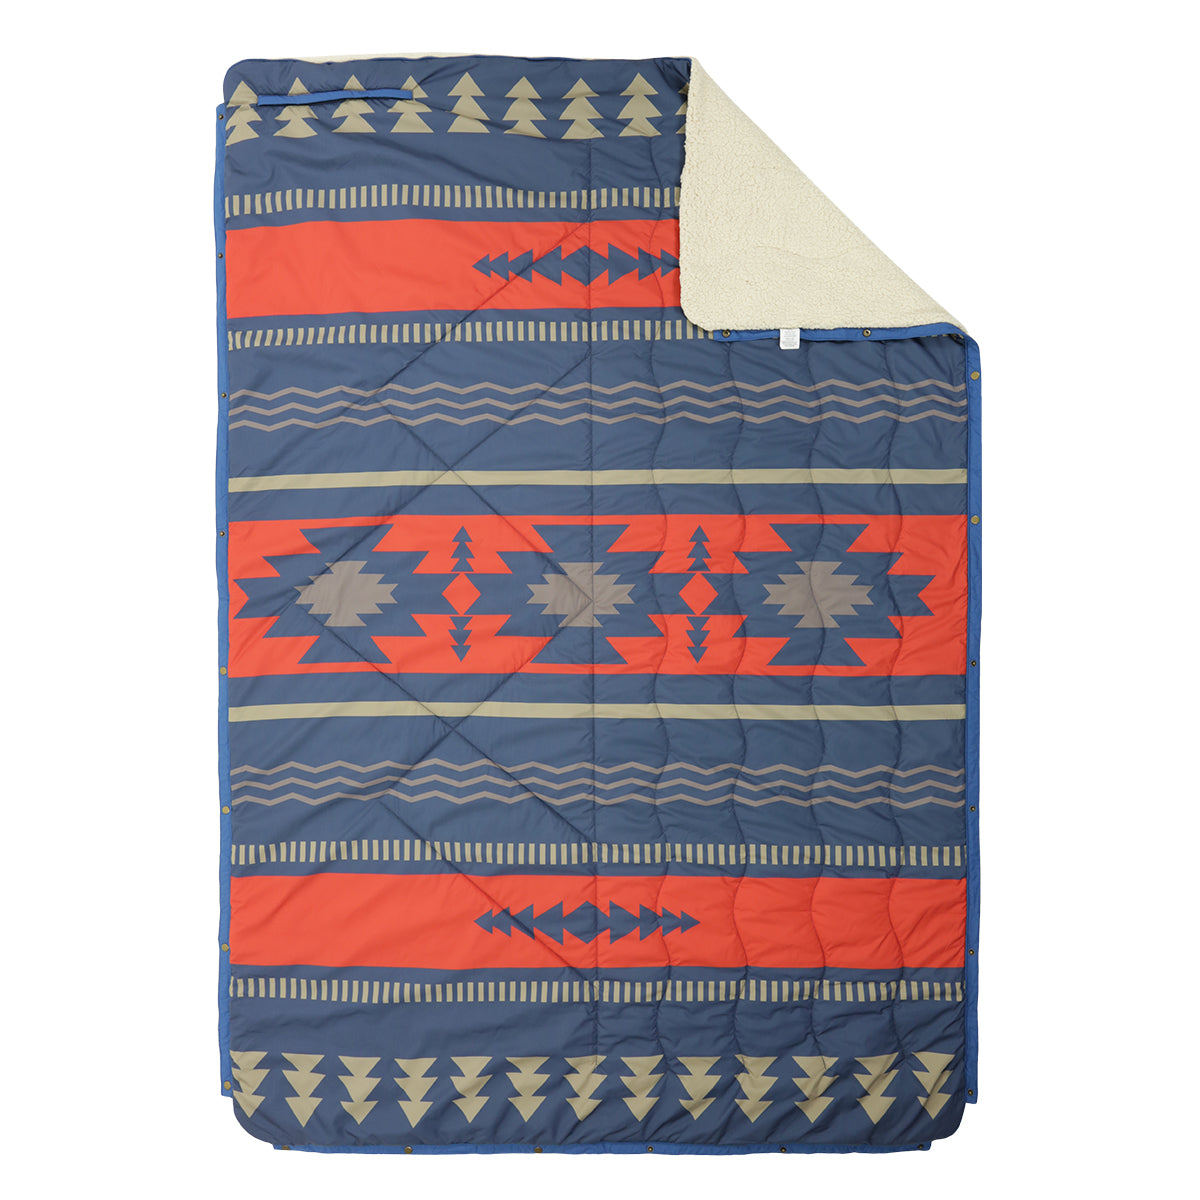 Nomadic 2 Person Sherpa Blanket - Navy & Red image 2